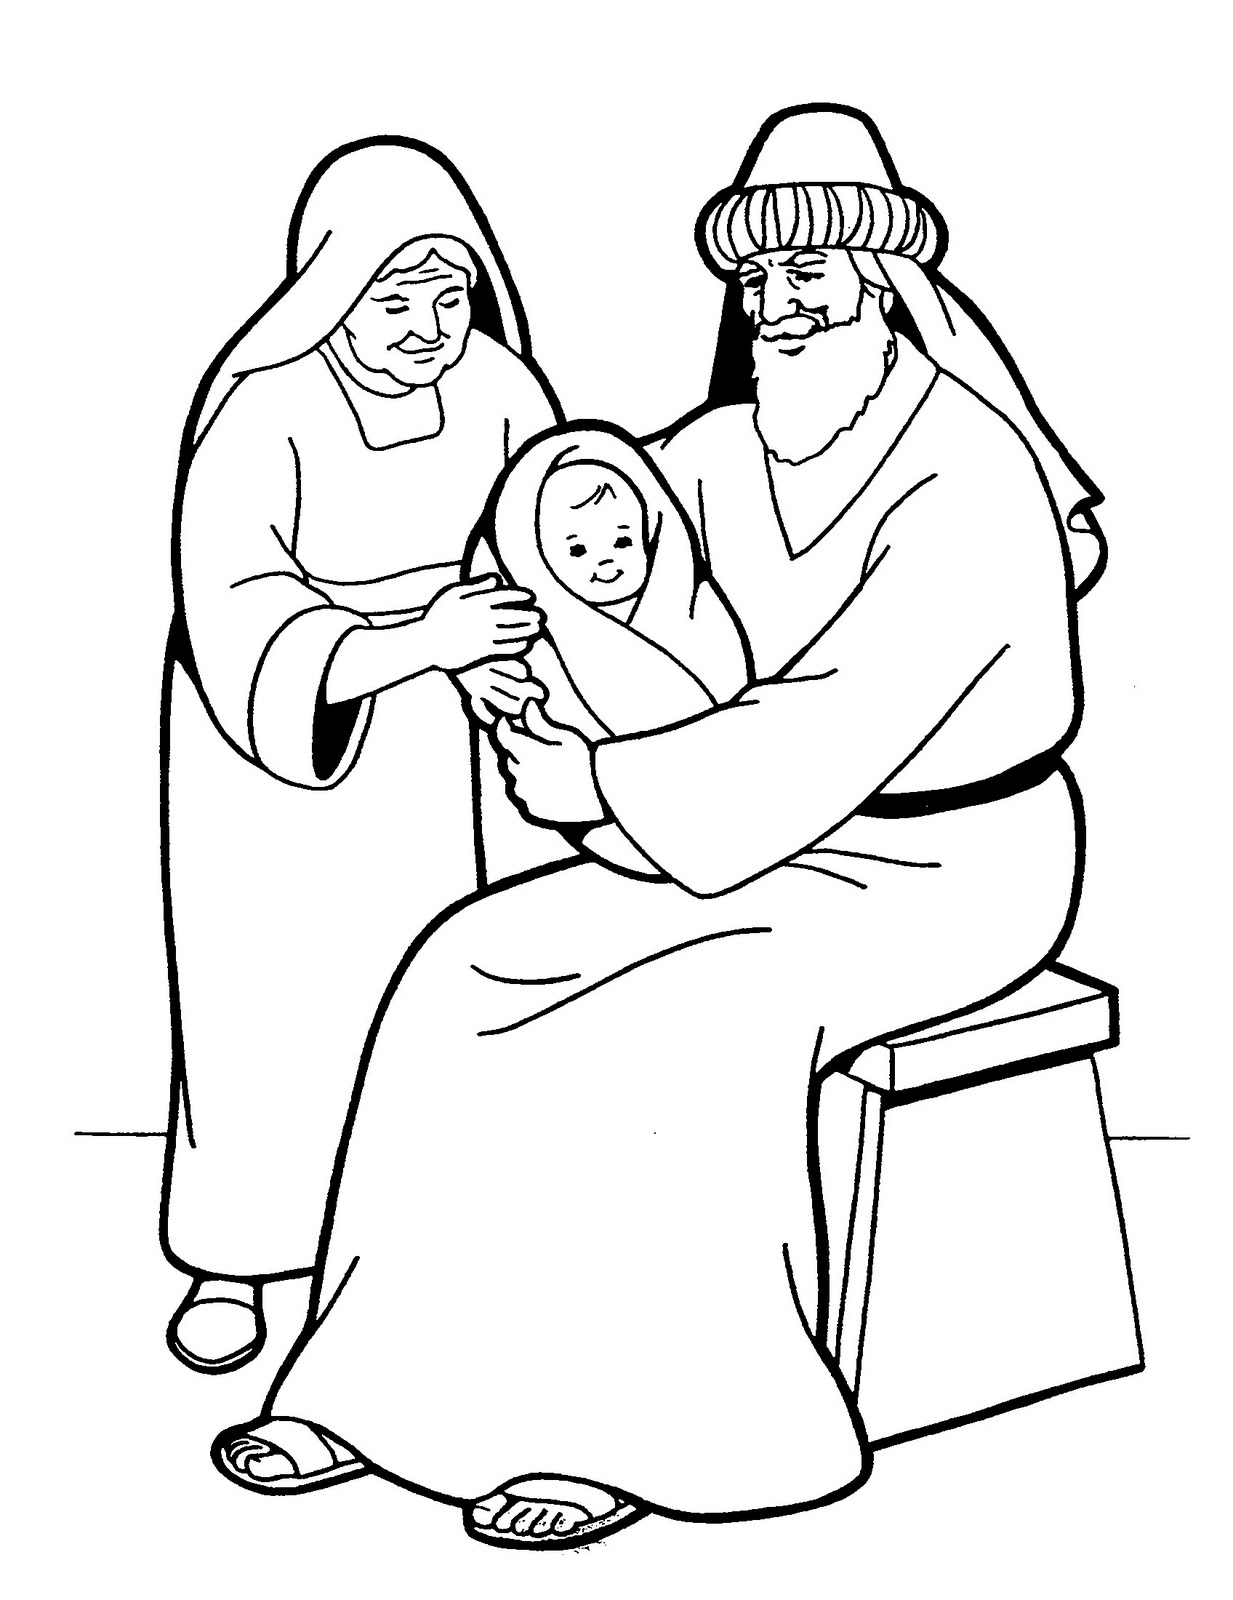 simeon and anna coloring pages - photo#4